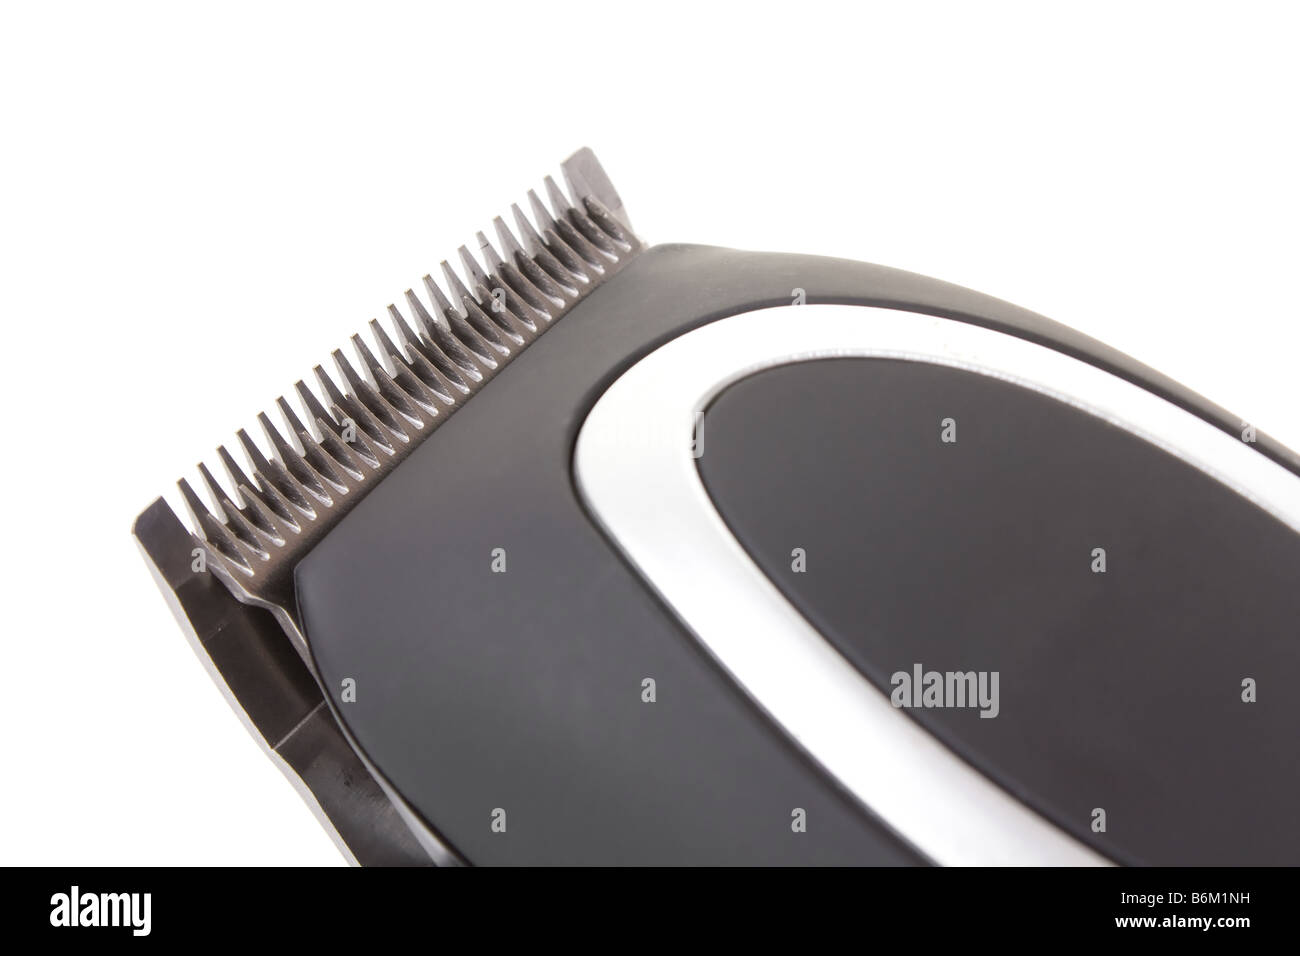 modern electric hair / beard trimmer Stock Photo